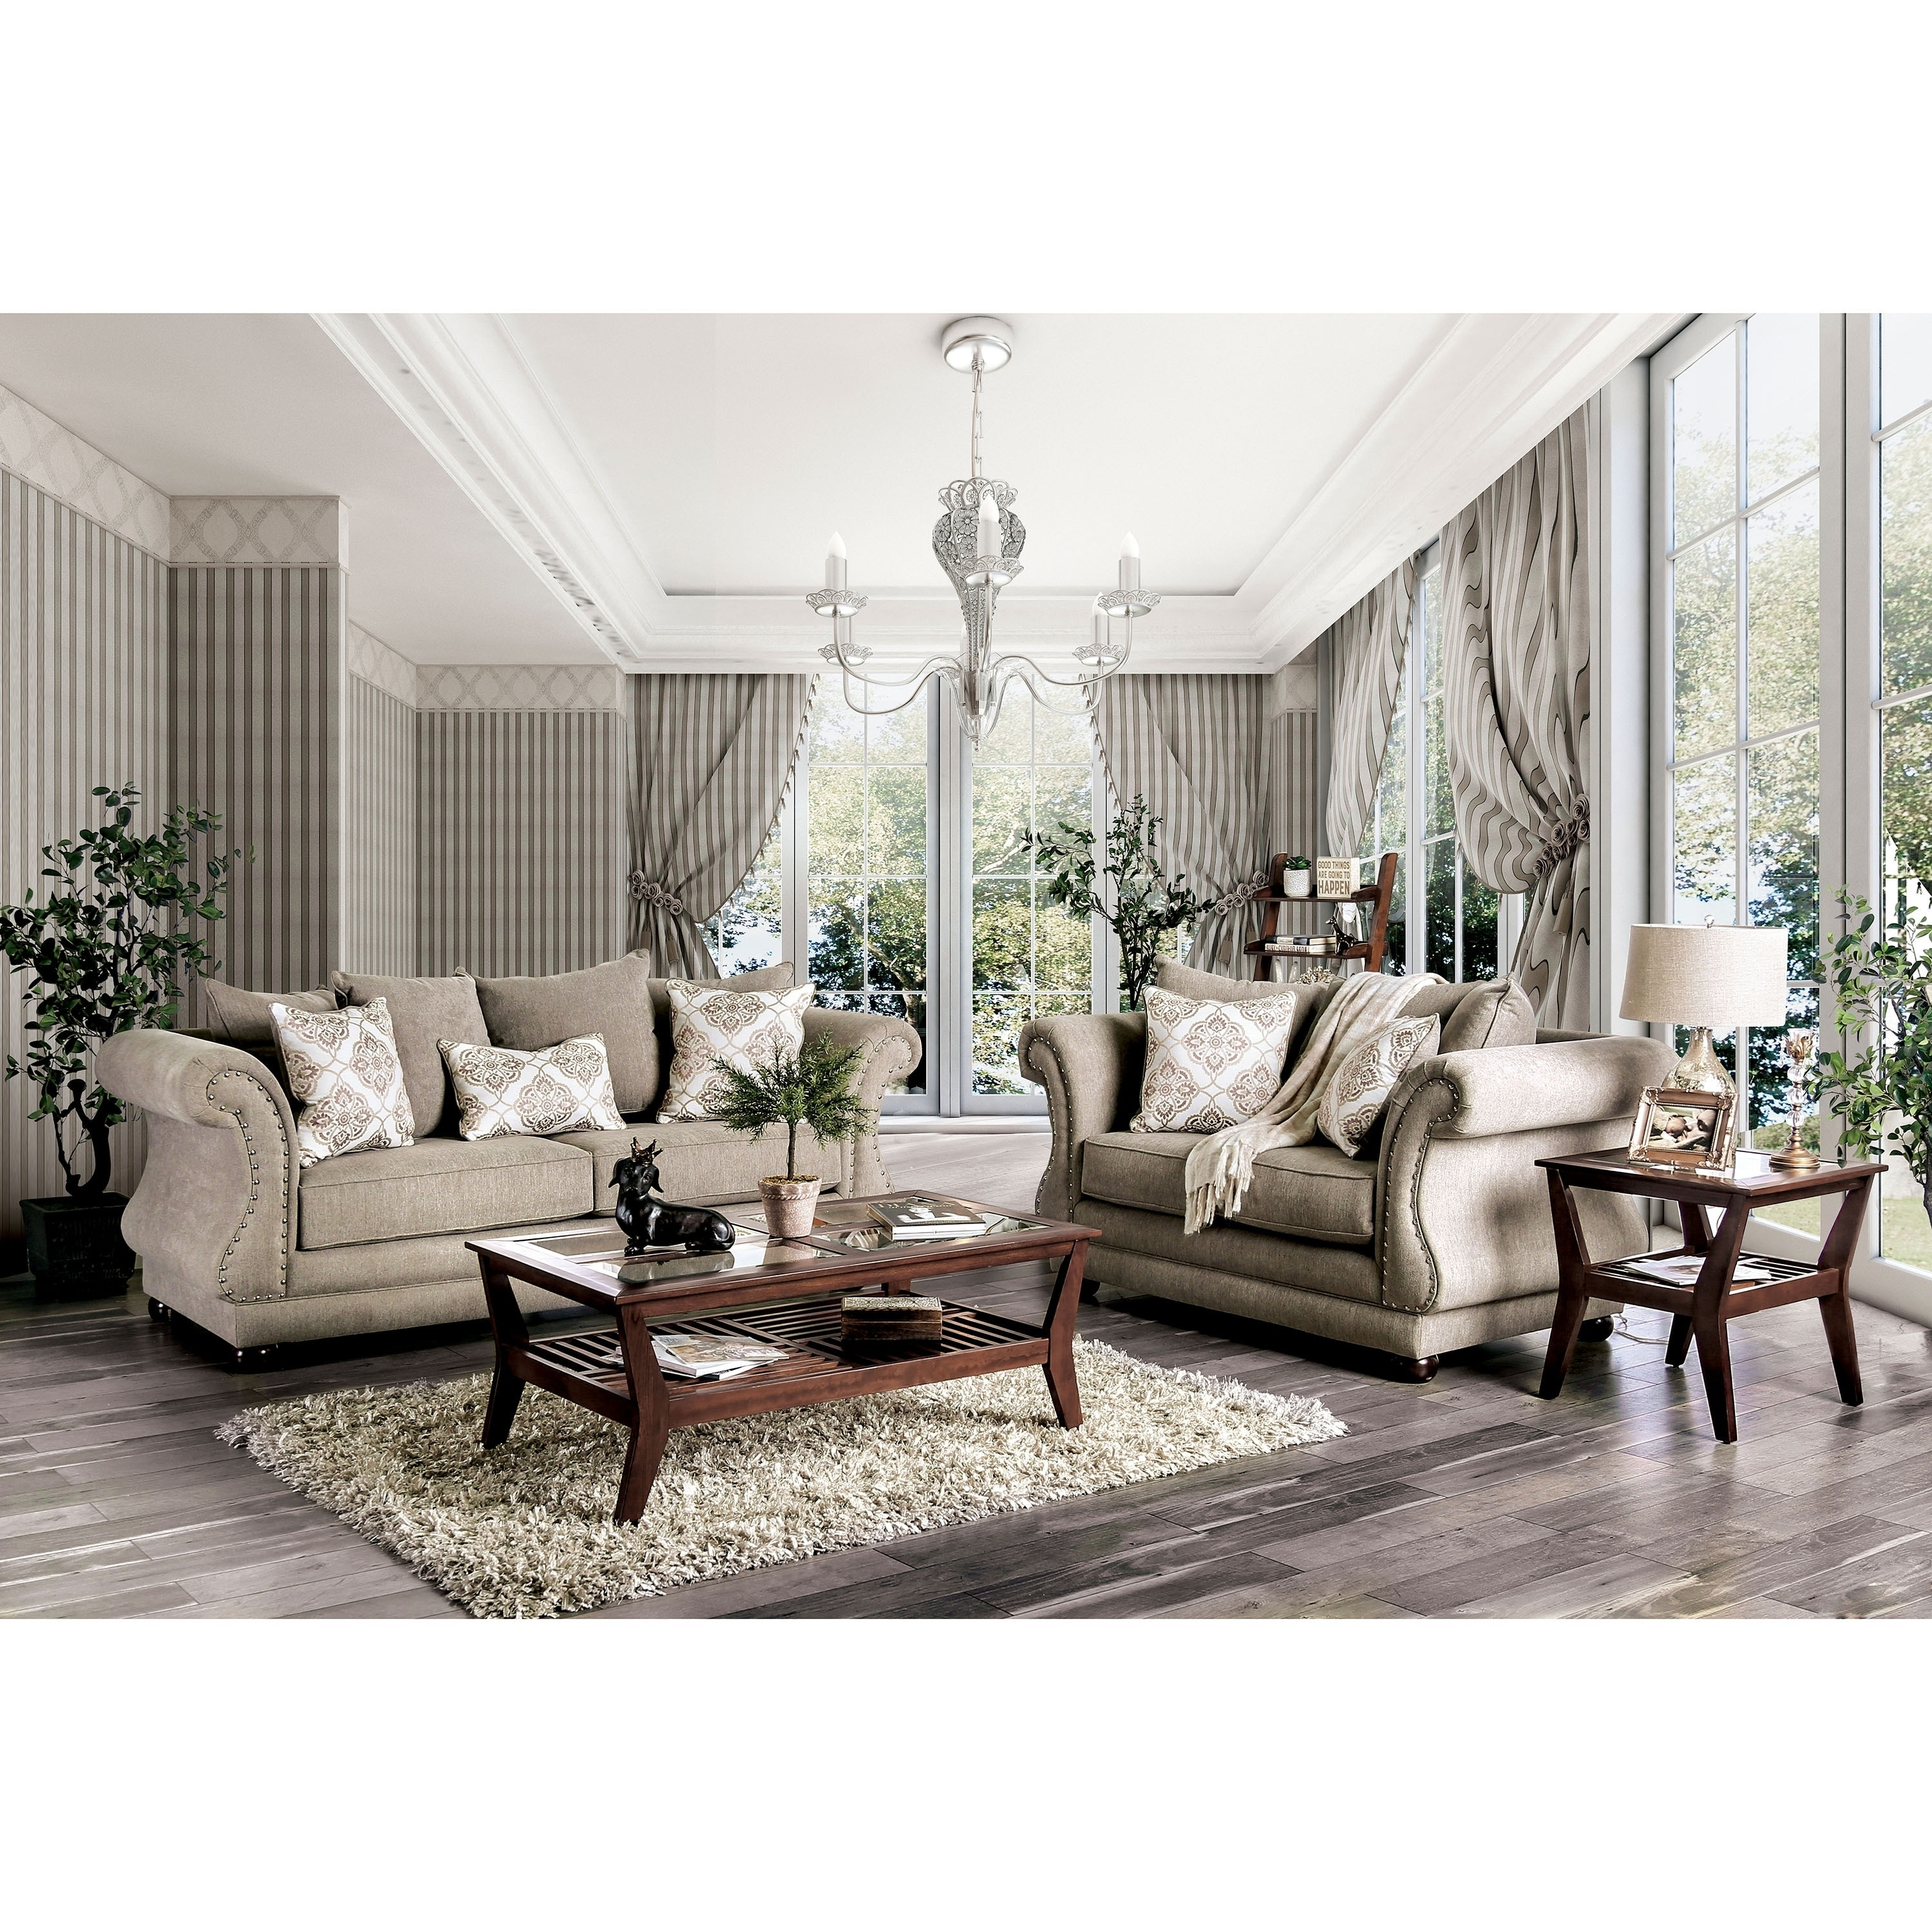 Shop nariah traditional grey 2 piece nailhead living room set by foa free shipping today overstock 28408363